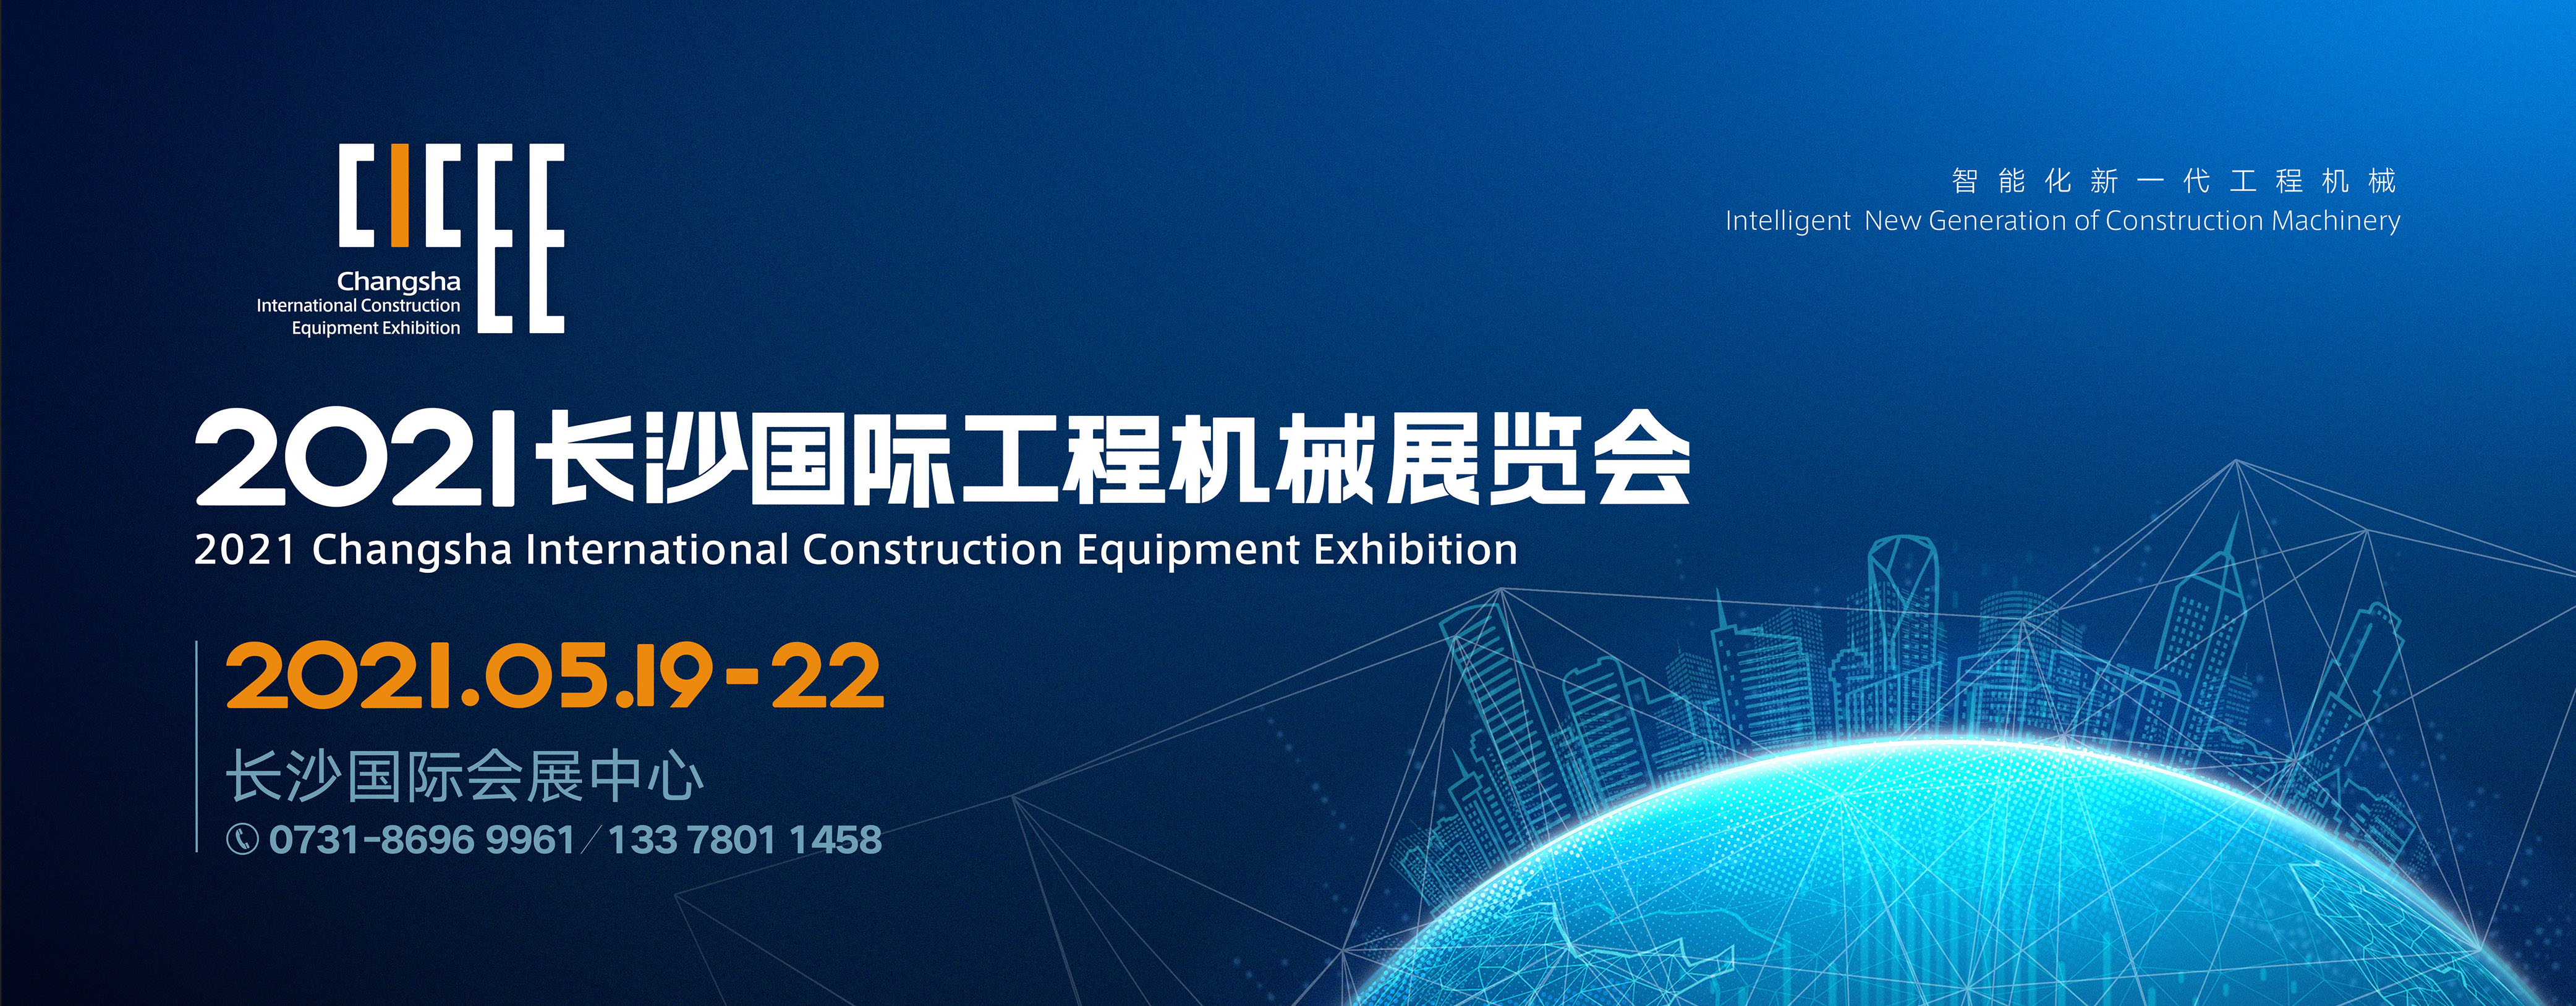 Heading for the upcoming CICEEE conference in China 19/5/21-22/5/21